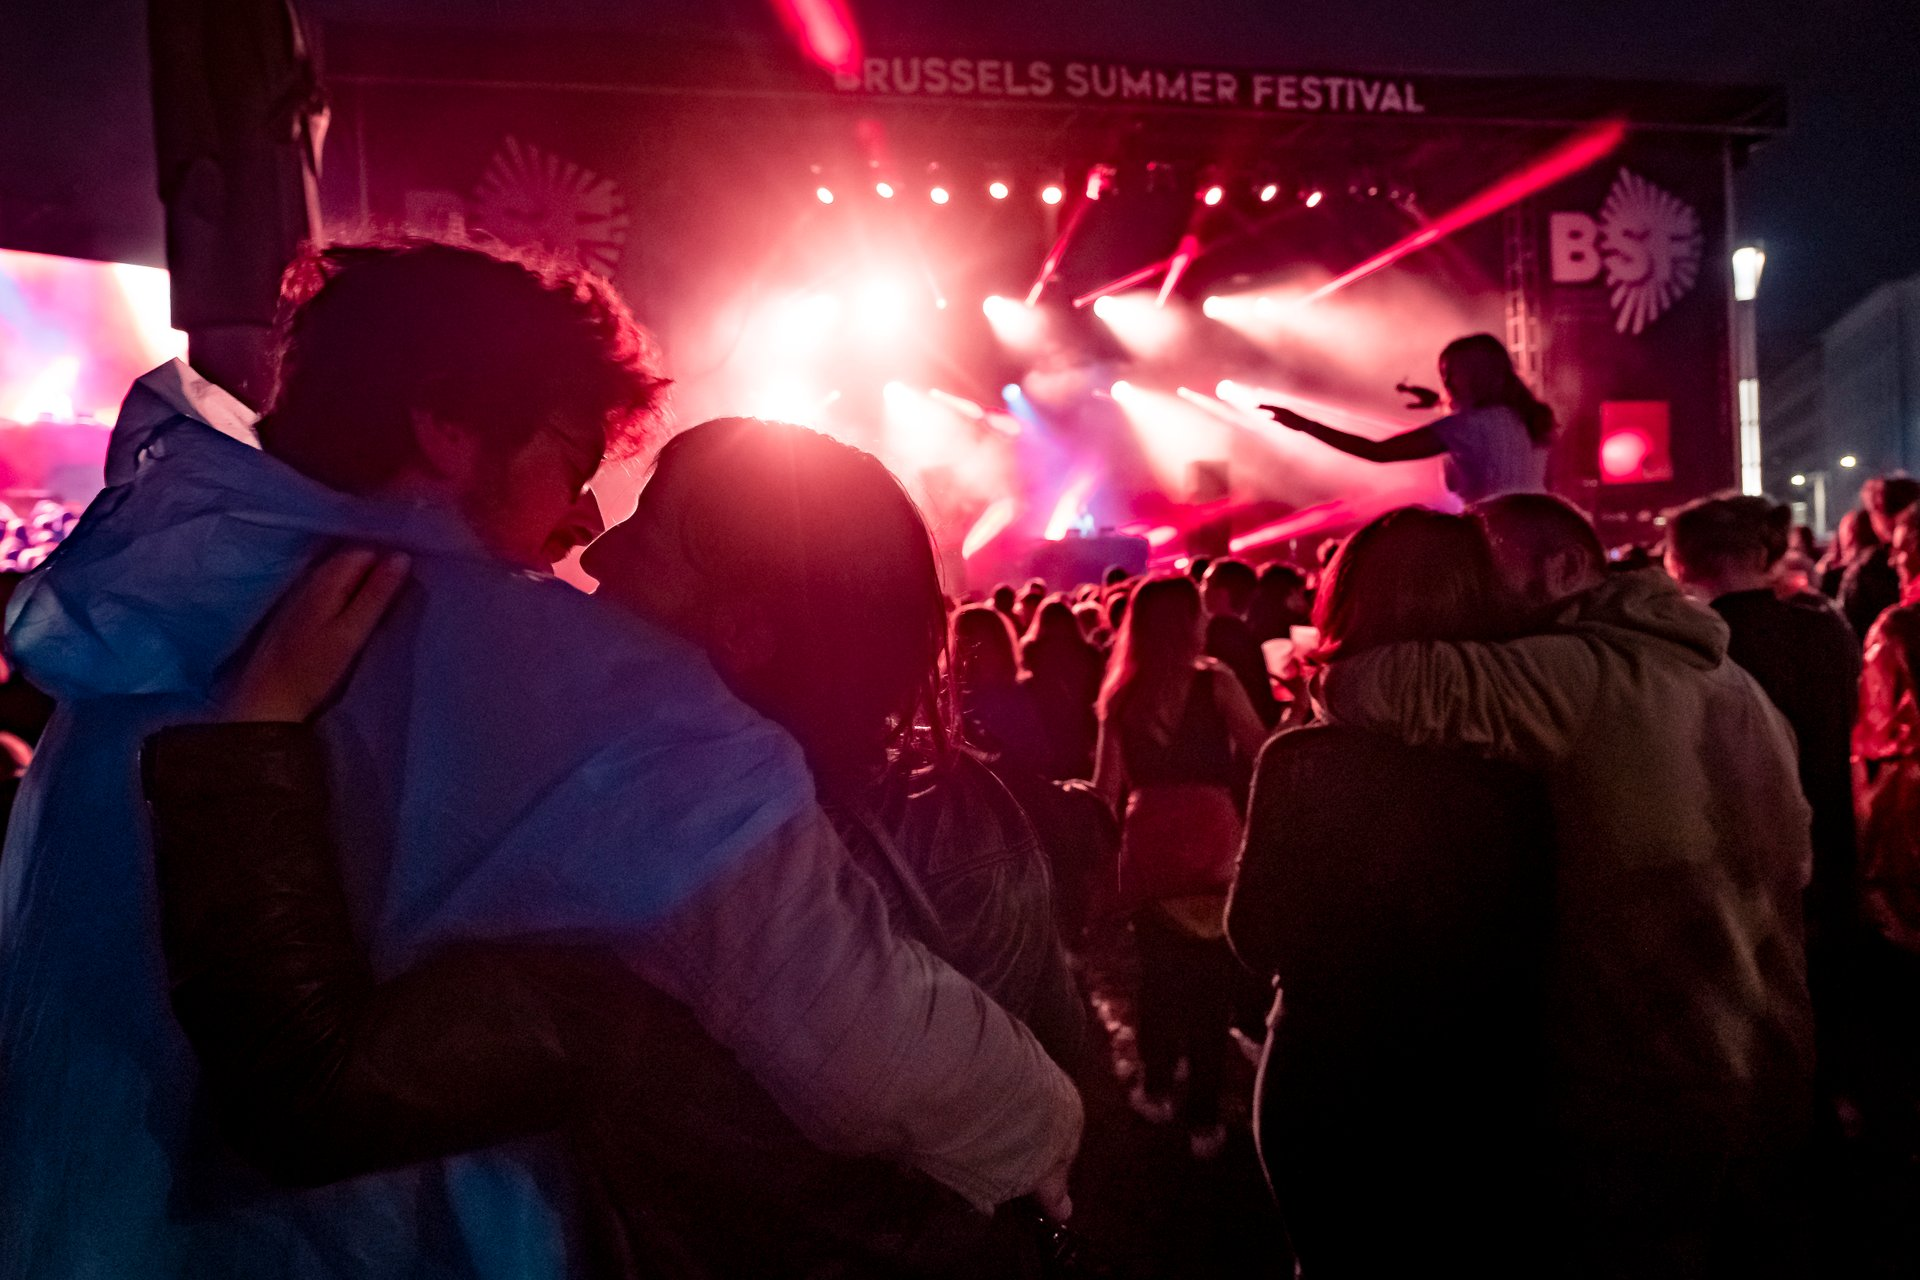 Best time for Brussels Summer Festival in Brussels 2020